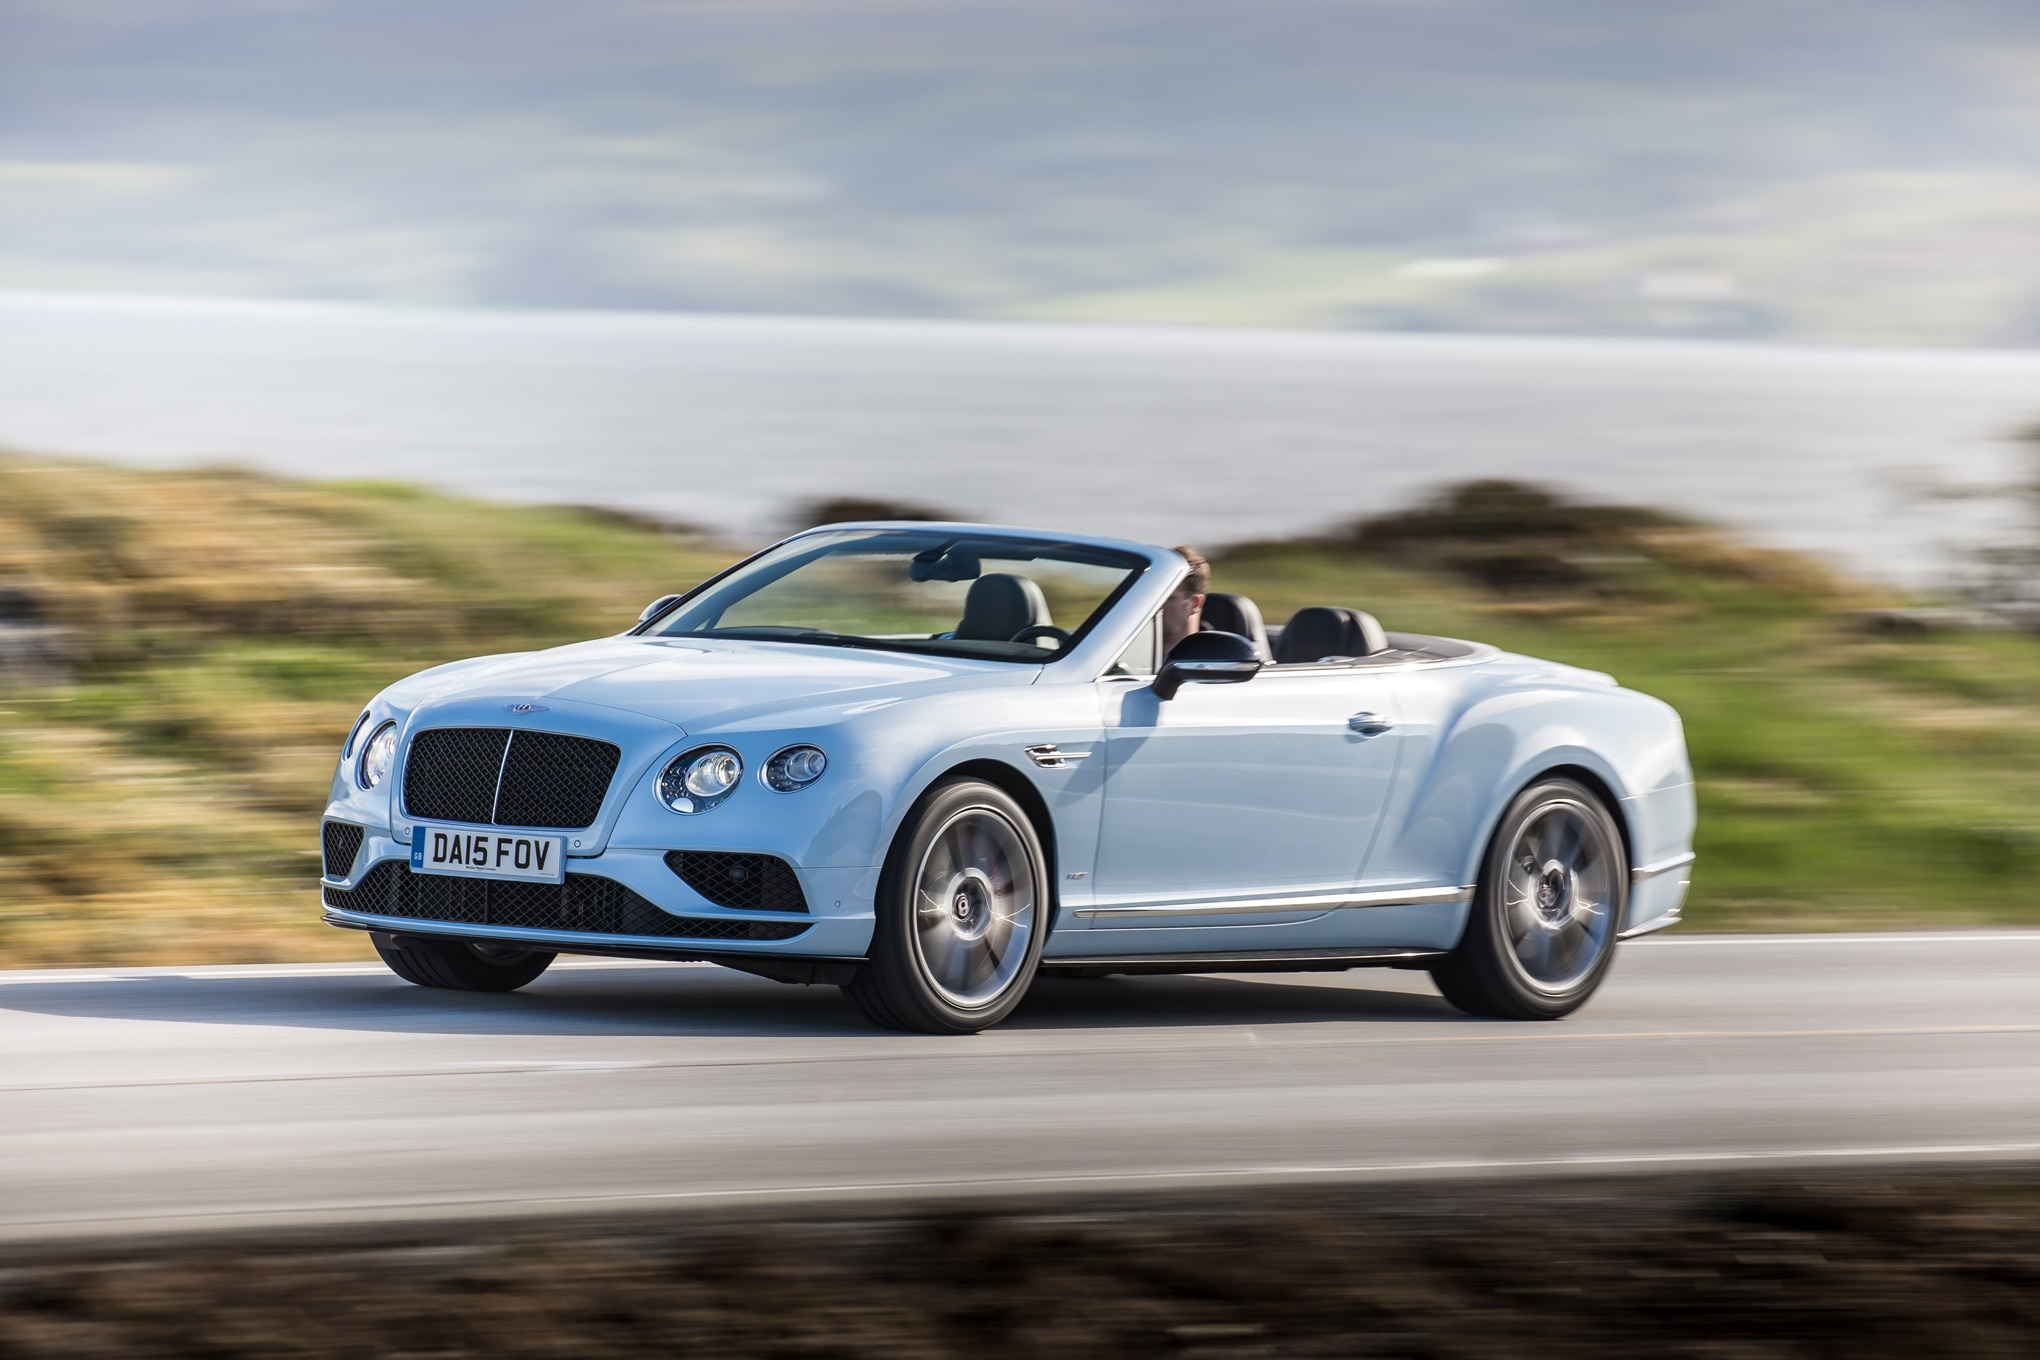 2016 Bentley Continental GT Review on 2016 ford mustang v8, 2016 audi r8 v8, 2016 bentley flying spur v8, 2016 bentley limo, 2016 impala ss v8, 2016 ford gt v8, 2016 bentley coupe, 2016 bentley gt3 speed, 2016 cadillac cts v8, 2016 bentley convertible, 2016 bentley gt speed, 2016 bentley brooklands, 2016 jeep grand cherokee v8, 2016 bentley mansory, 2016 aston martin vantage v8,